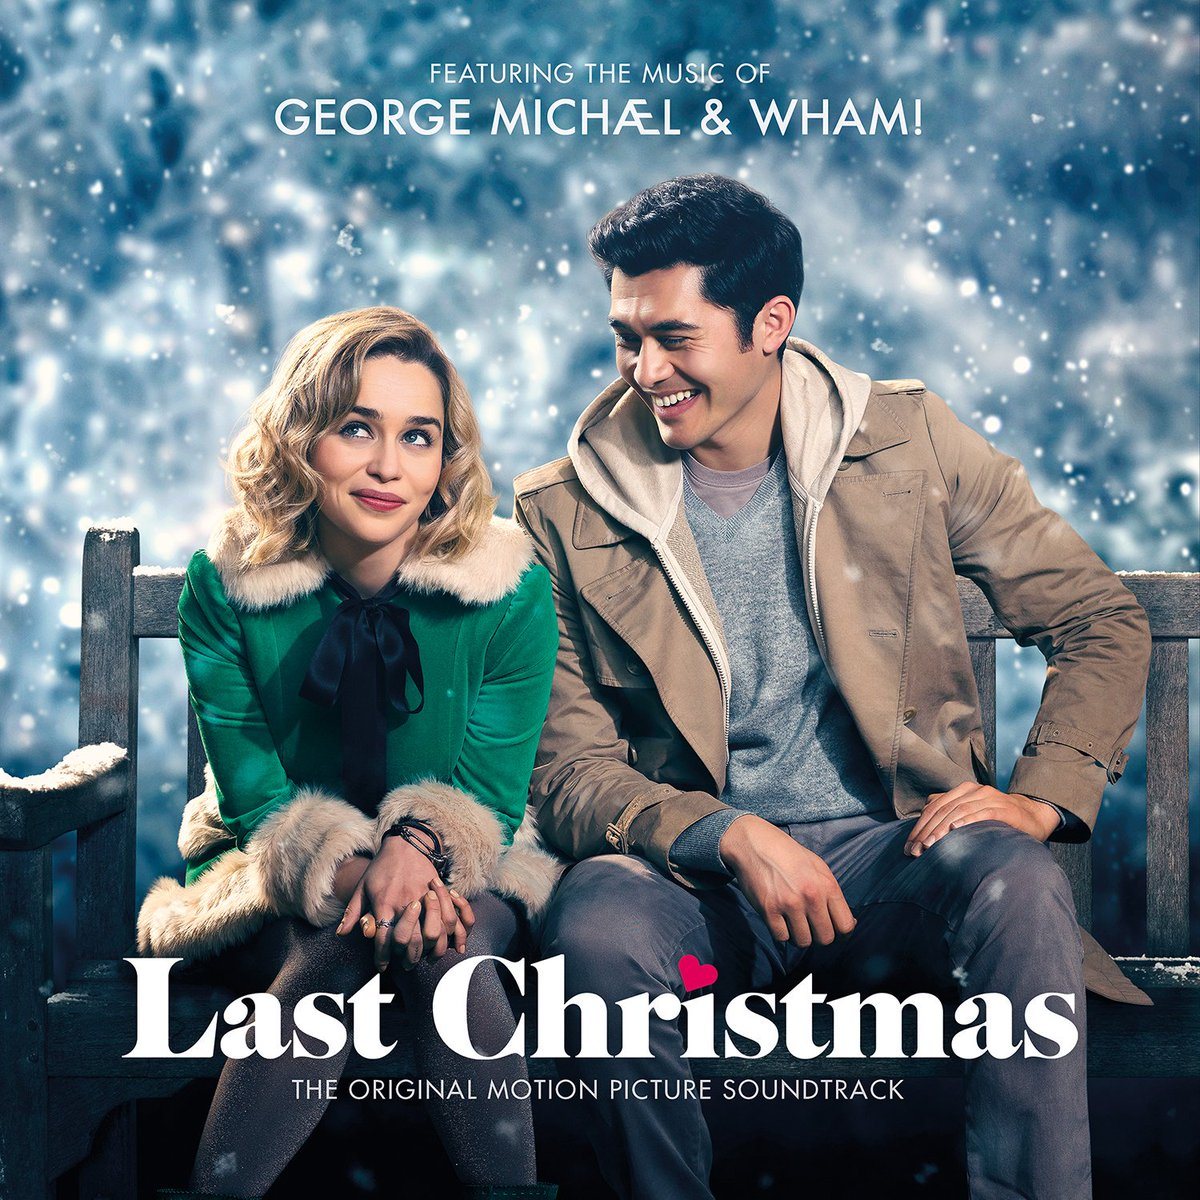 Last Christmas Album Cover.George Michael Official On Twitter We Are Thrilled To